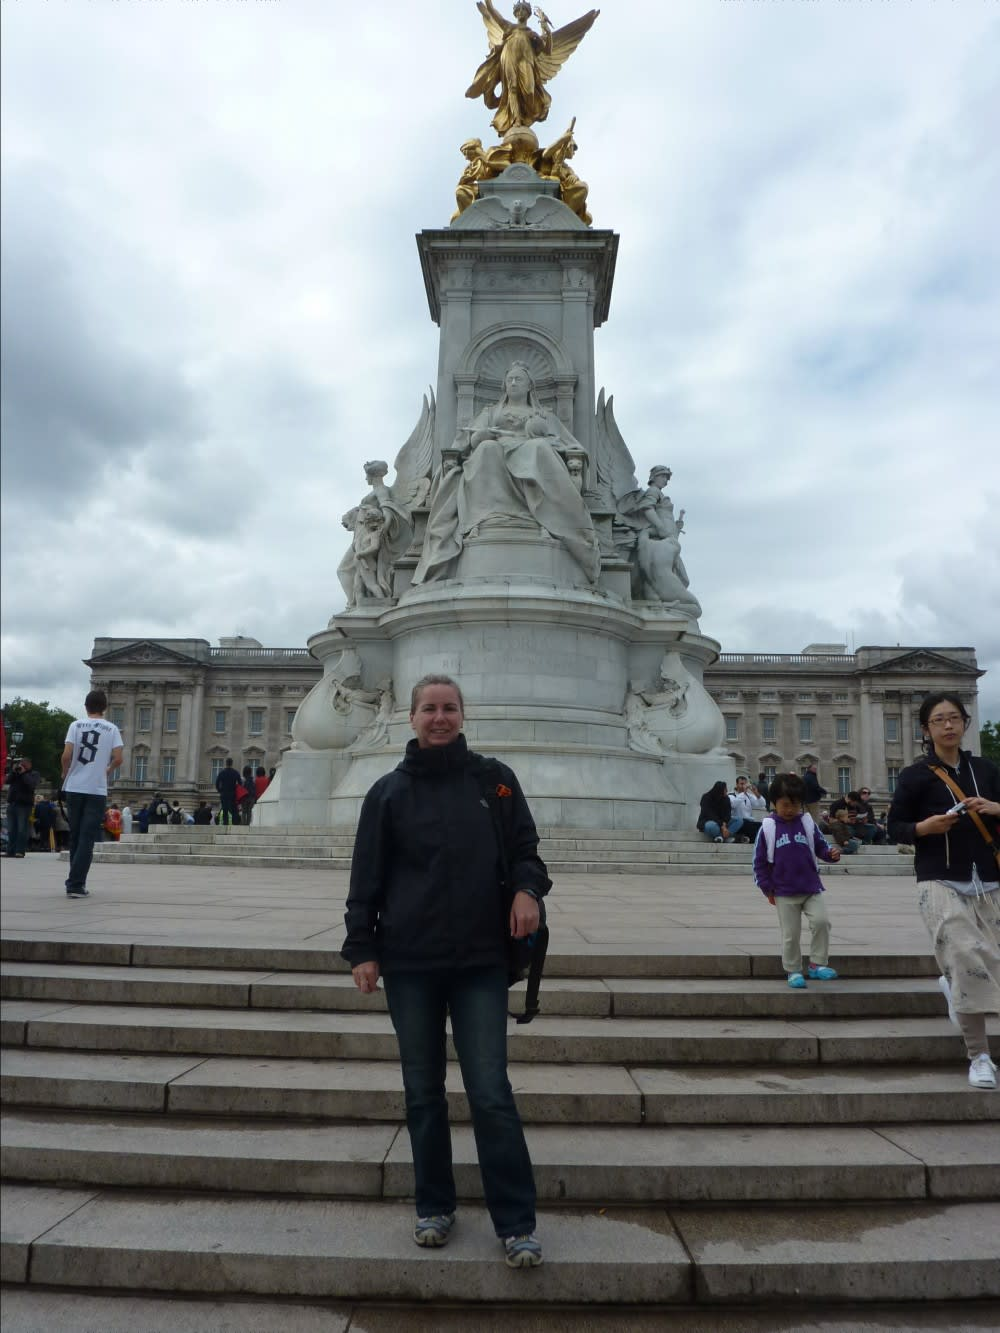 Me with Queen Victoria and Buckingham Palace behind